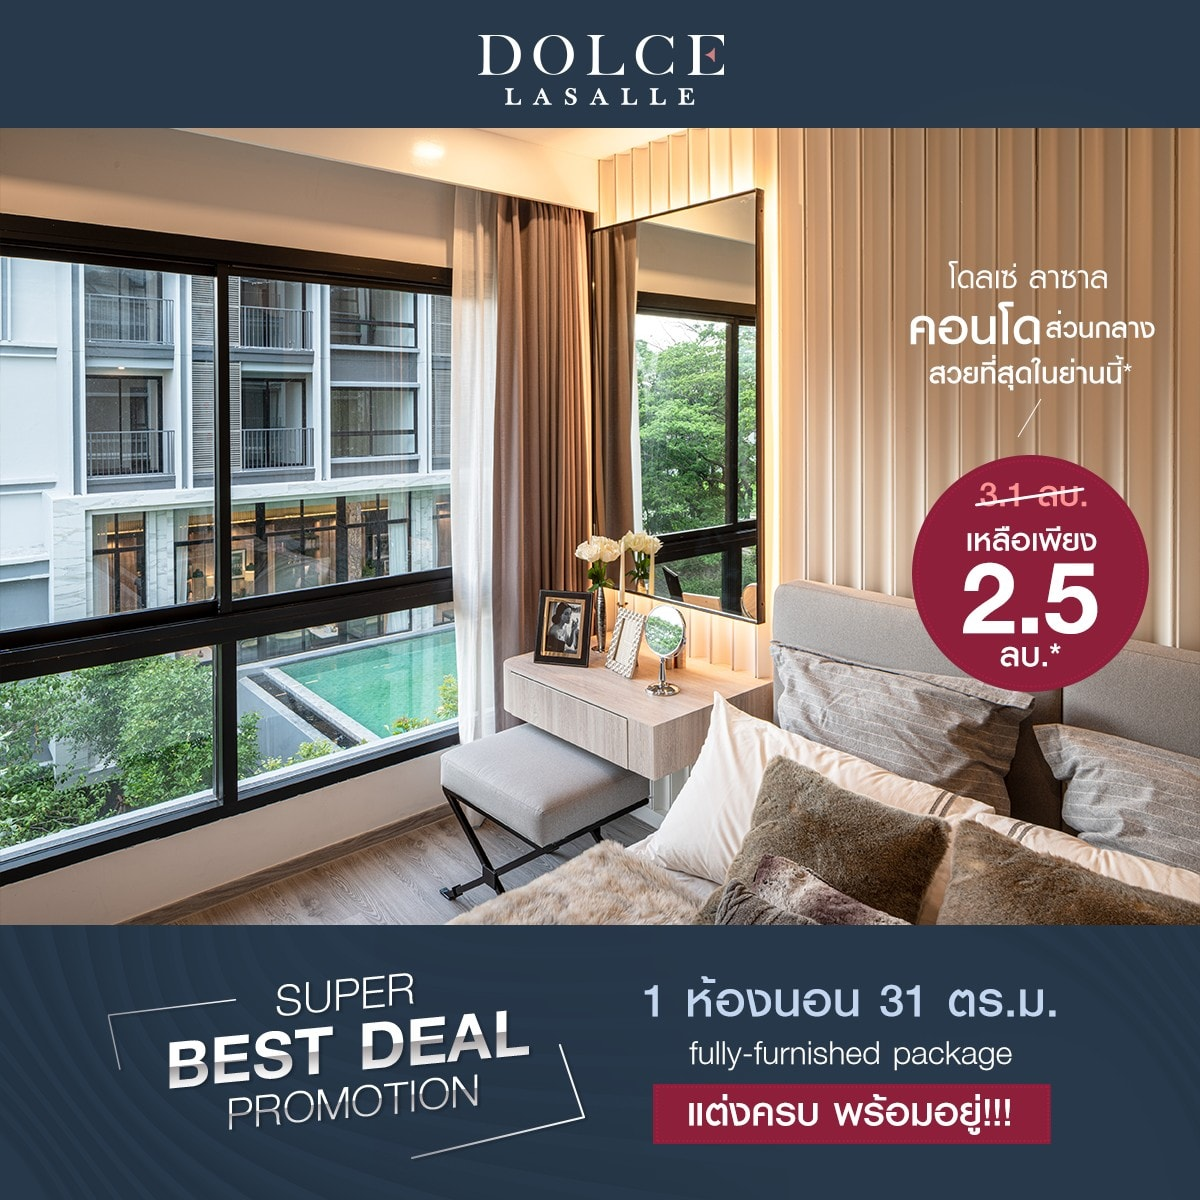 Dolce Lasalle SUPER SPECIAL PROMOTION!!! โปรสุดปัง